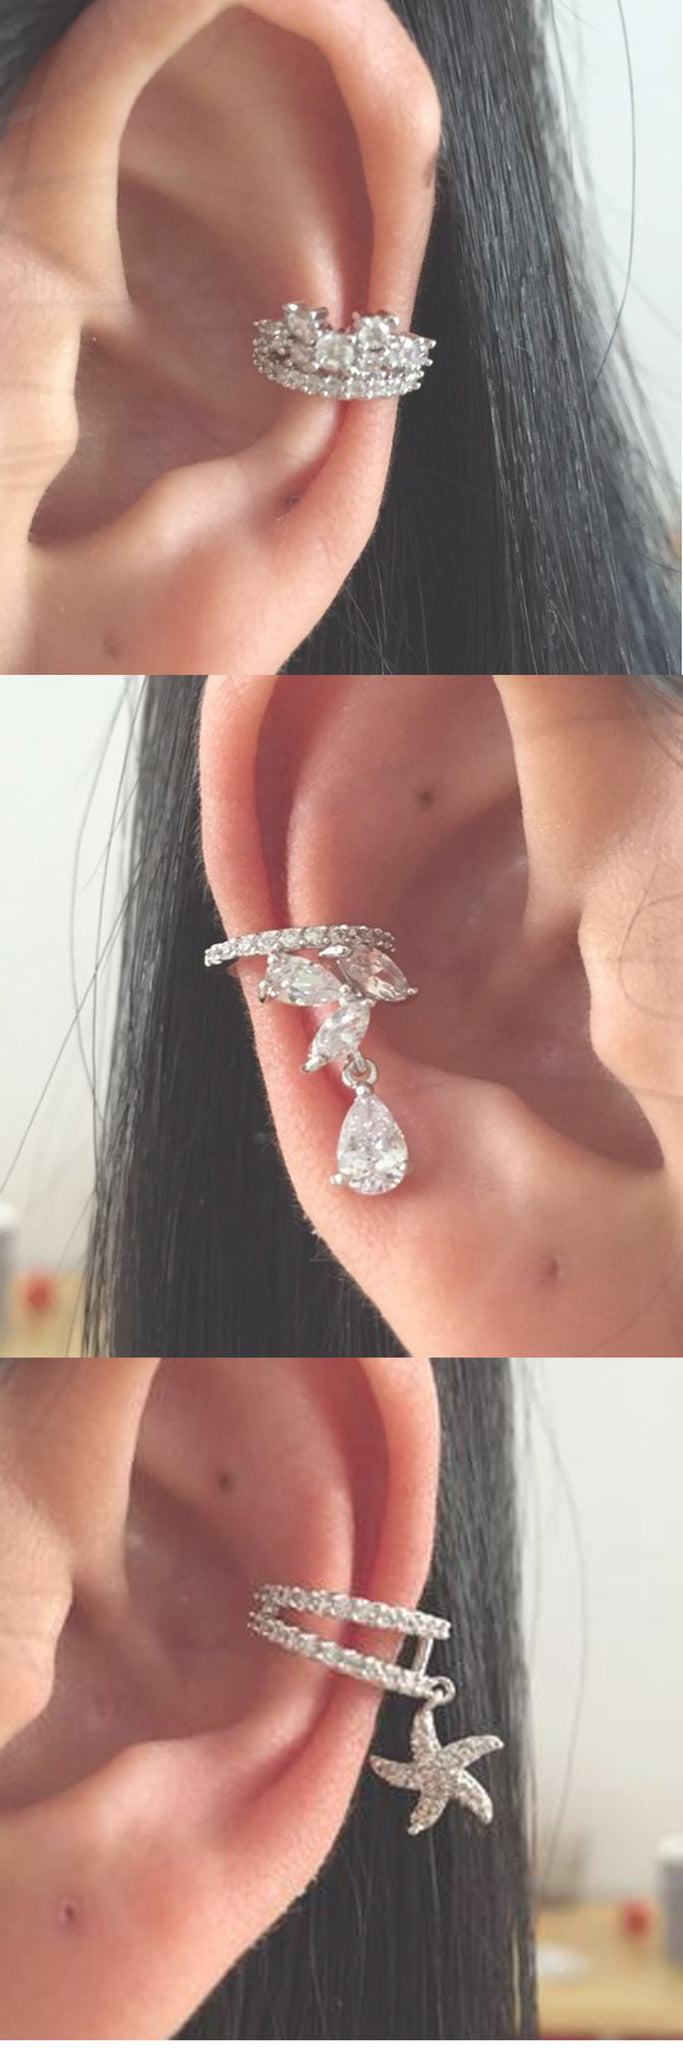 Simple Flat Silver Ear Piercing Ideas - Artes Oreja - Oor Piercing - Crystal Cartilage Helix Conch Ring Earrings